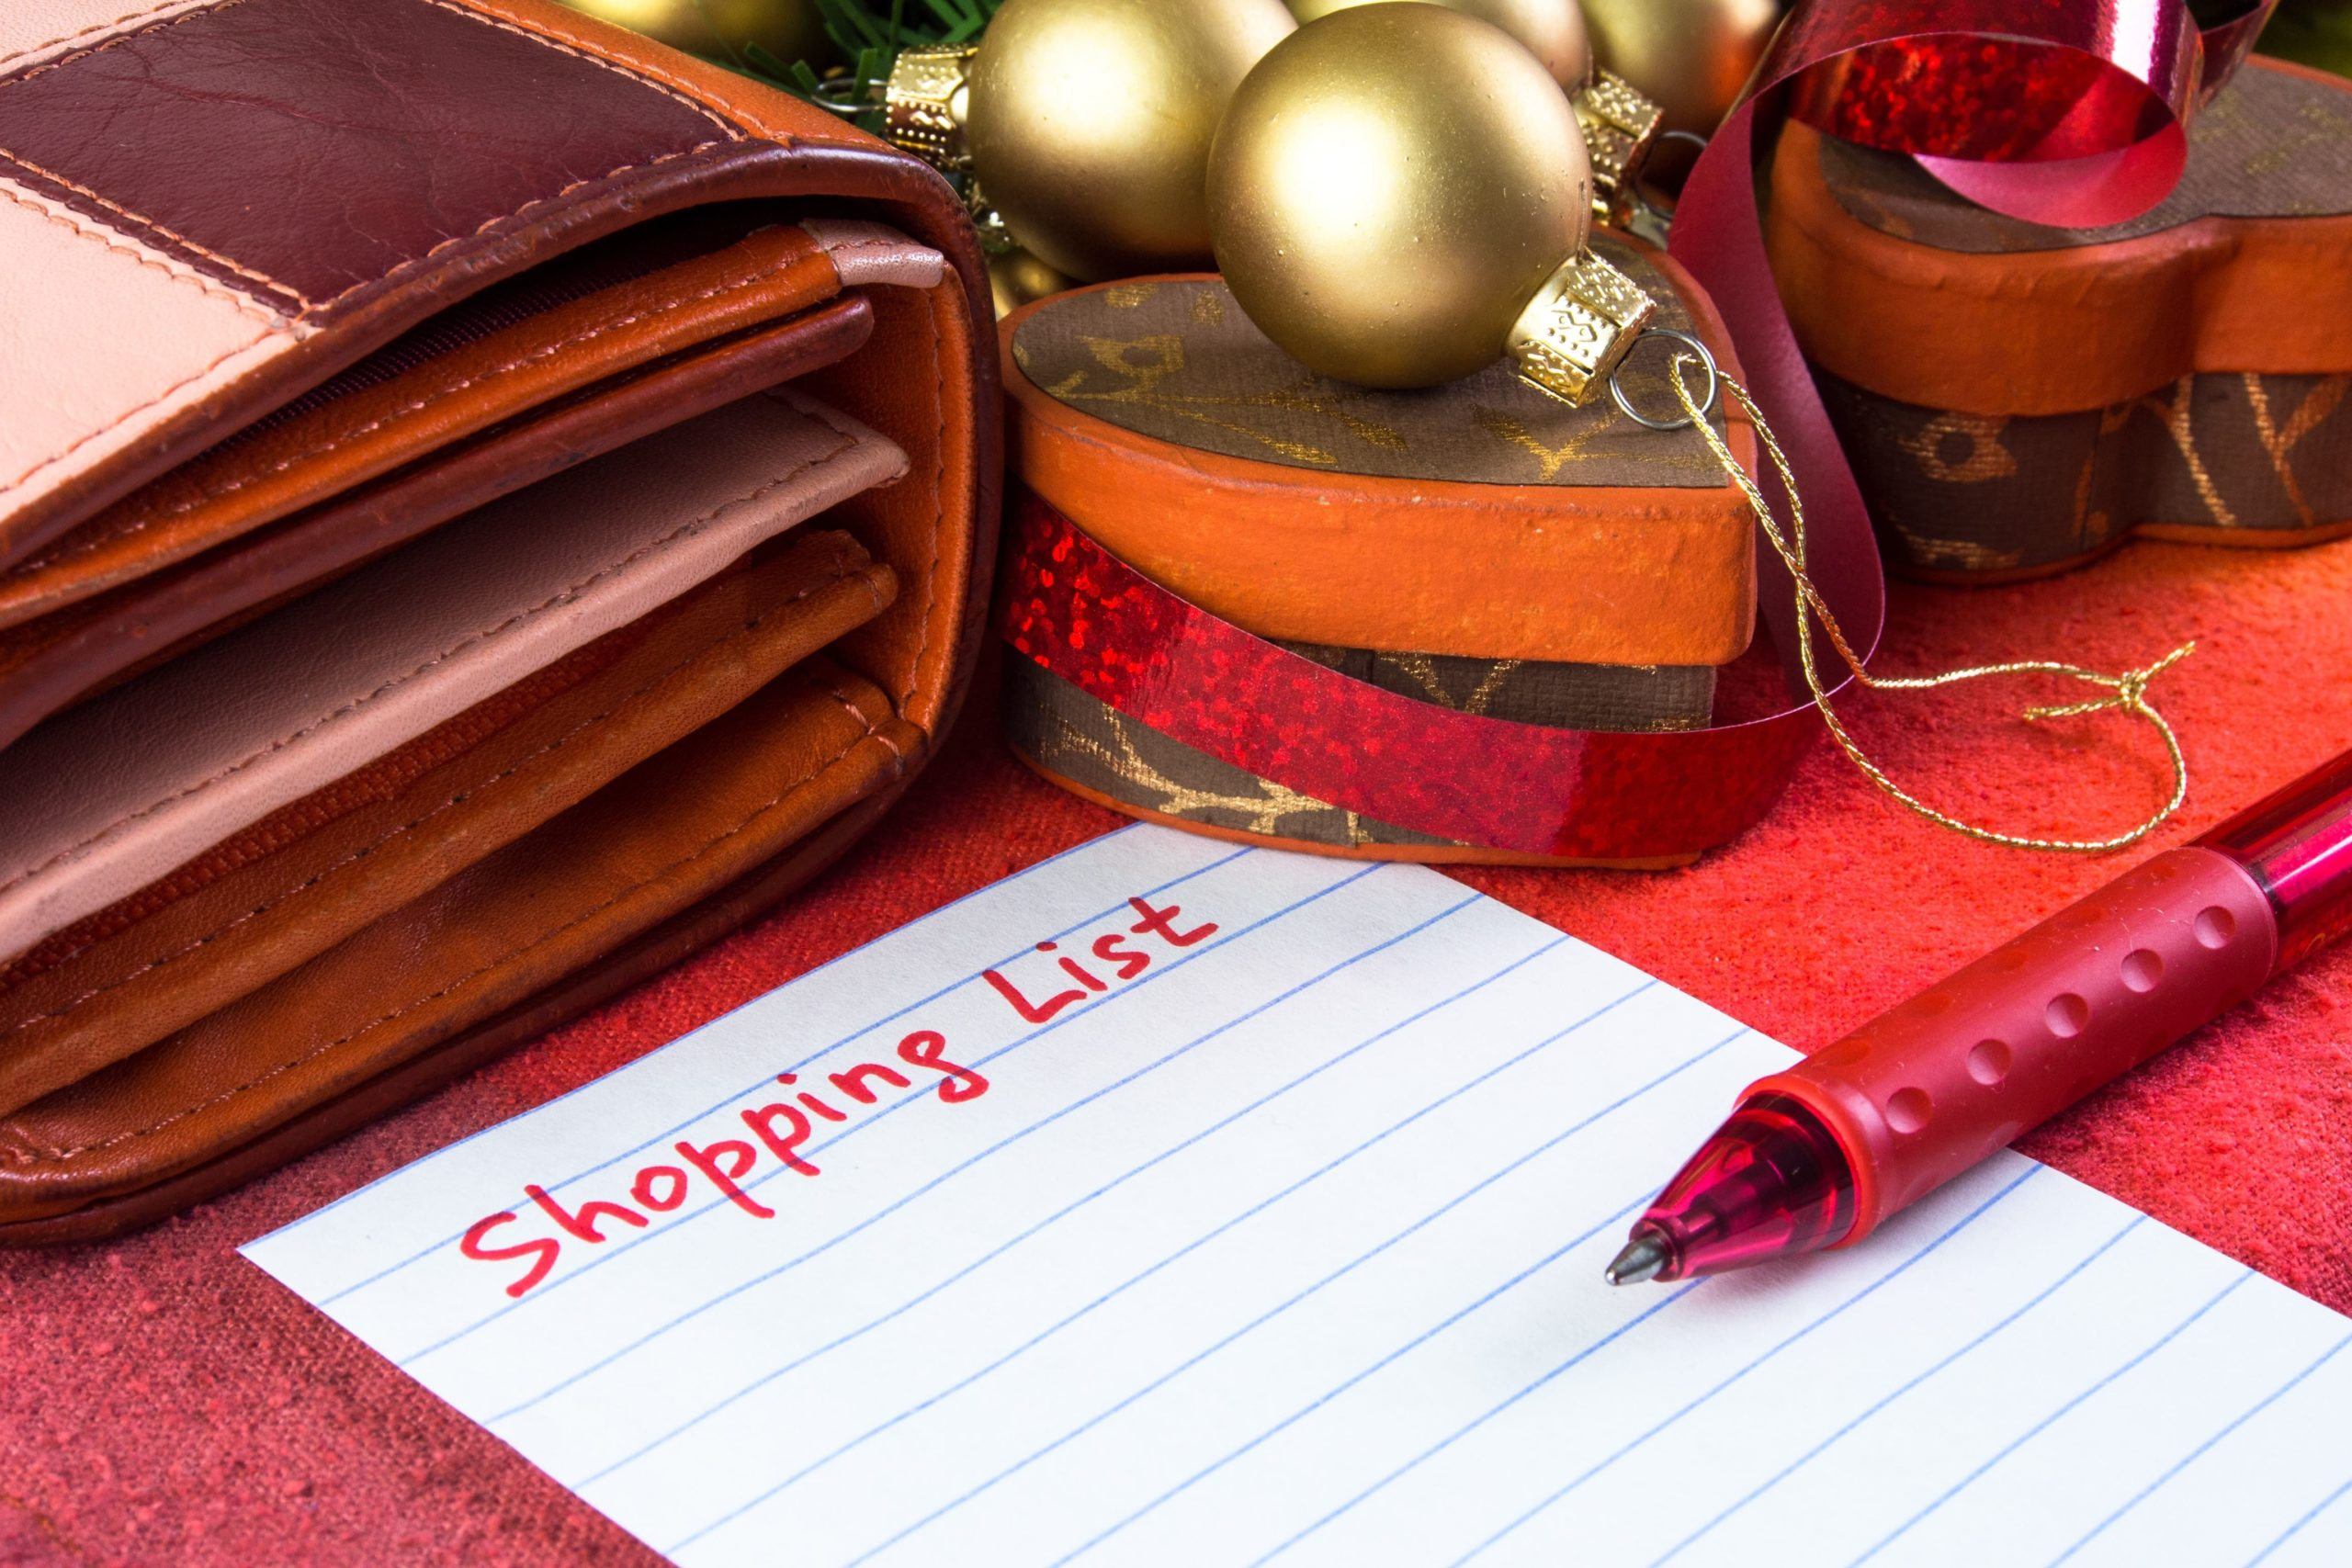 shopping-list-on-piece-of-white-paper-with-a-red-pen-at-christmas